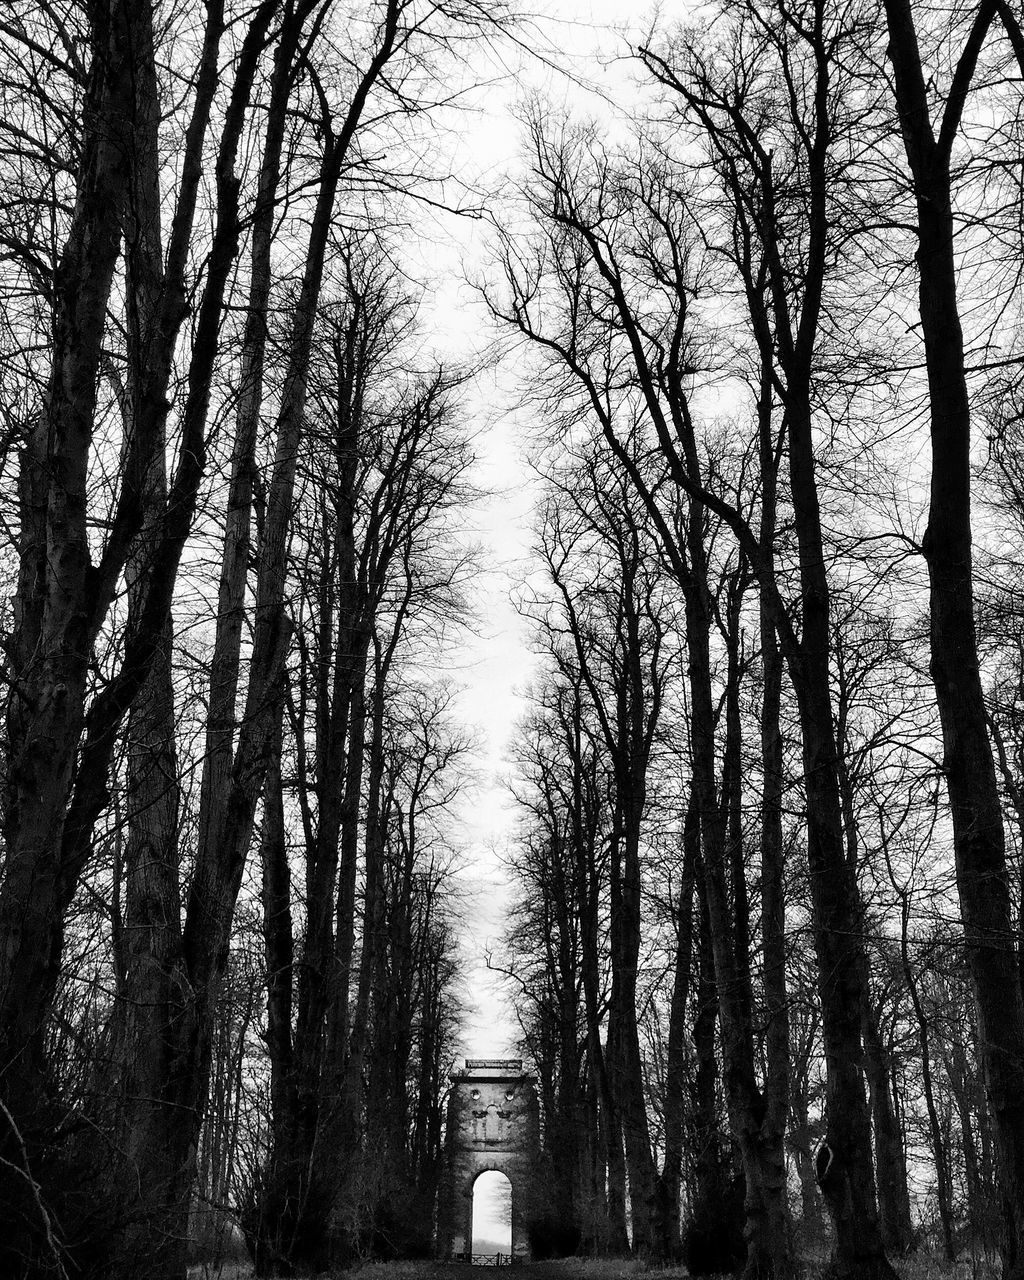 Low Angle View Of Bare Trees At Forest